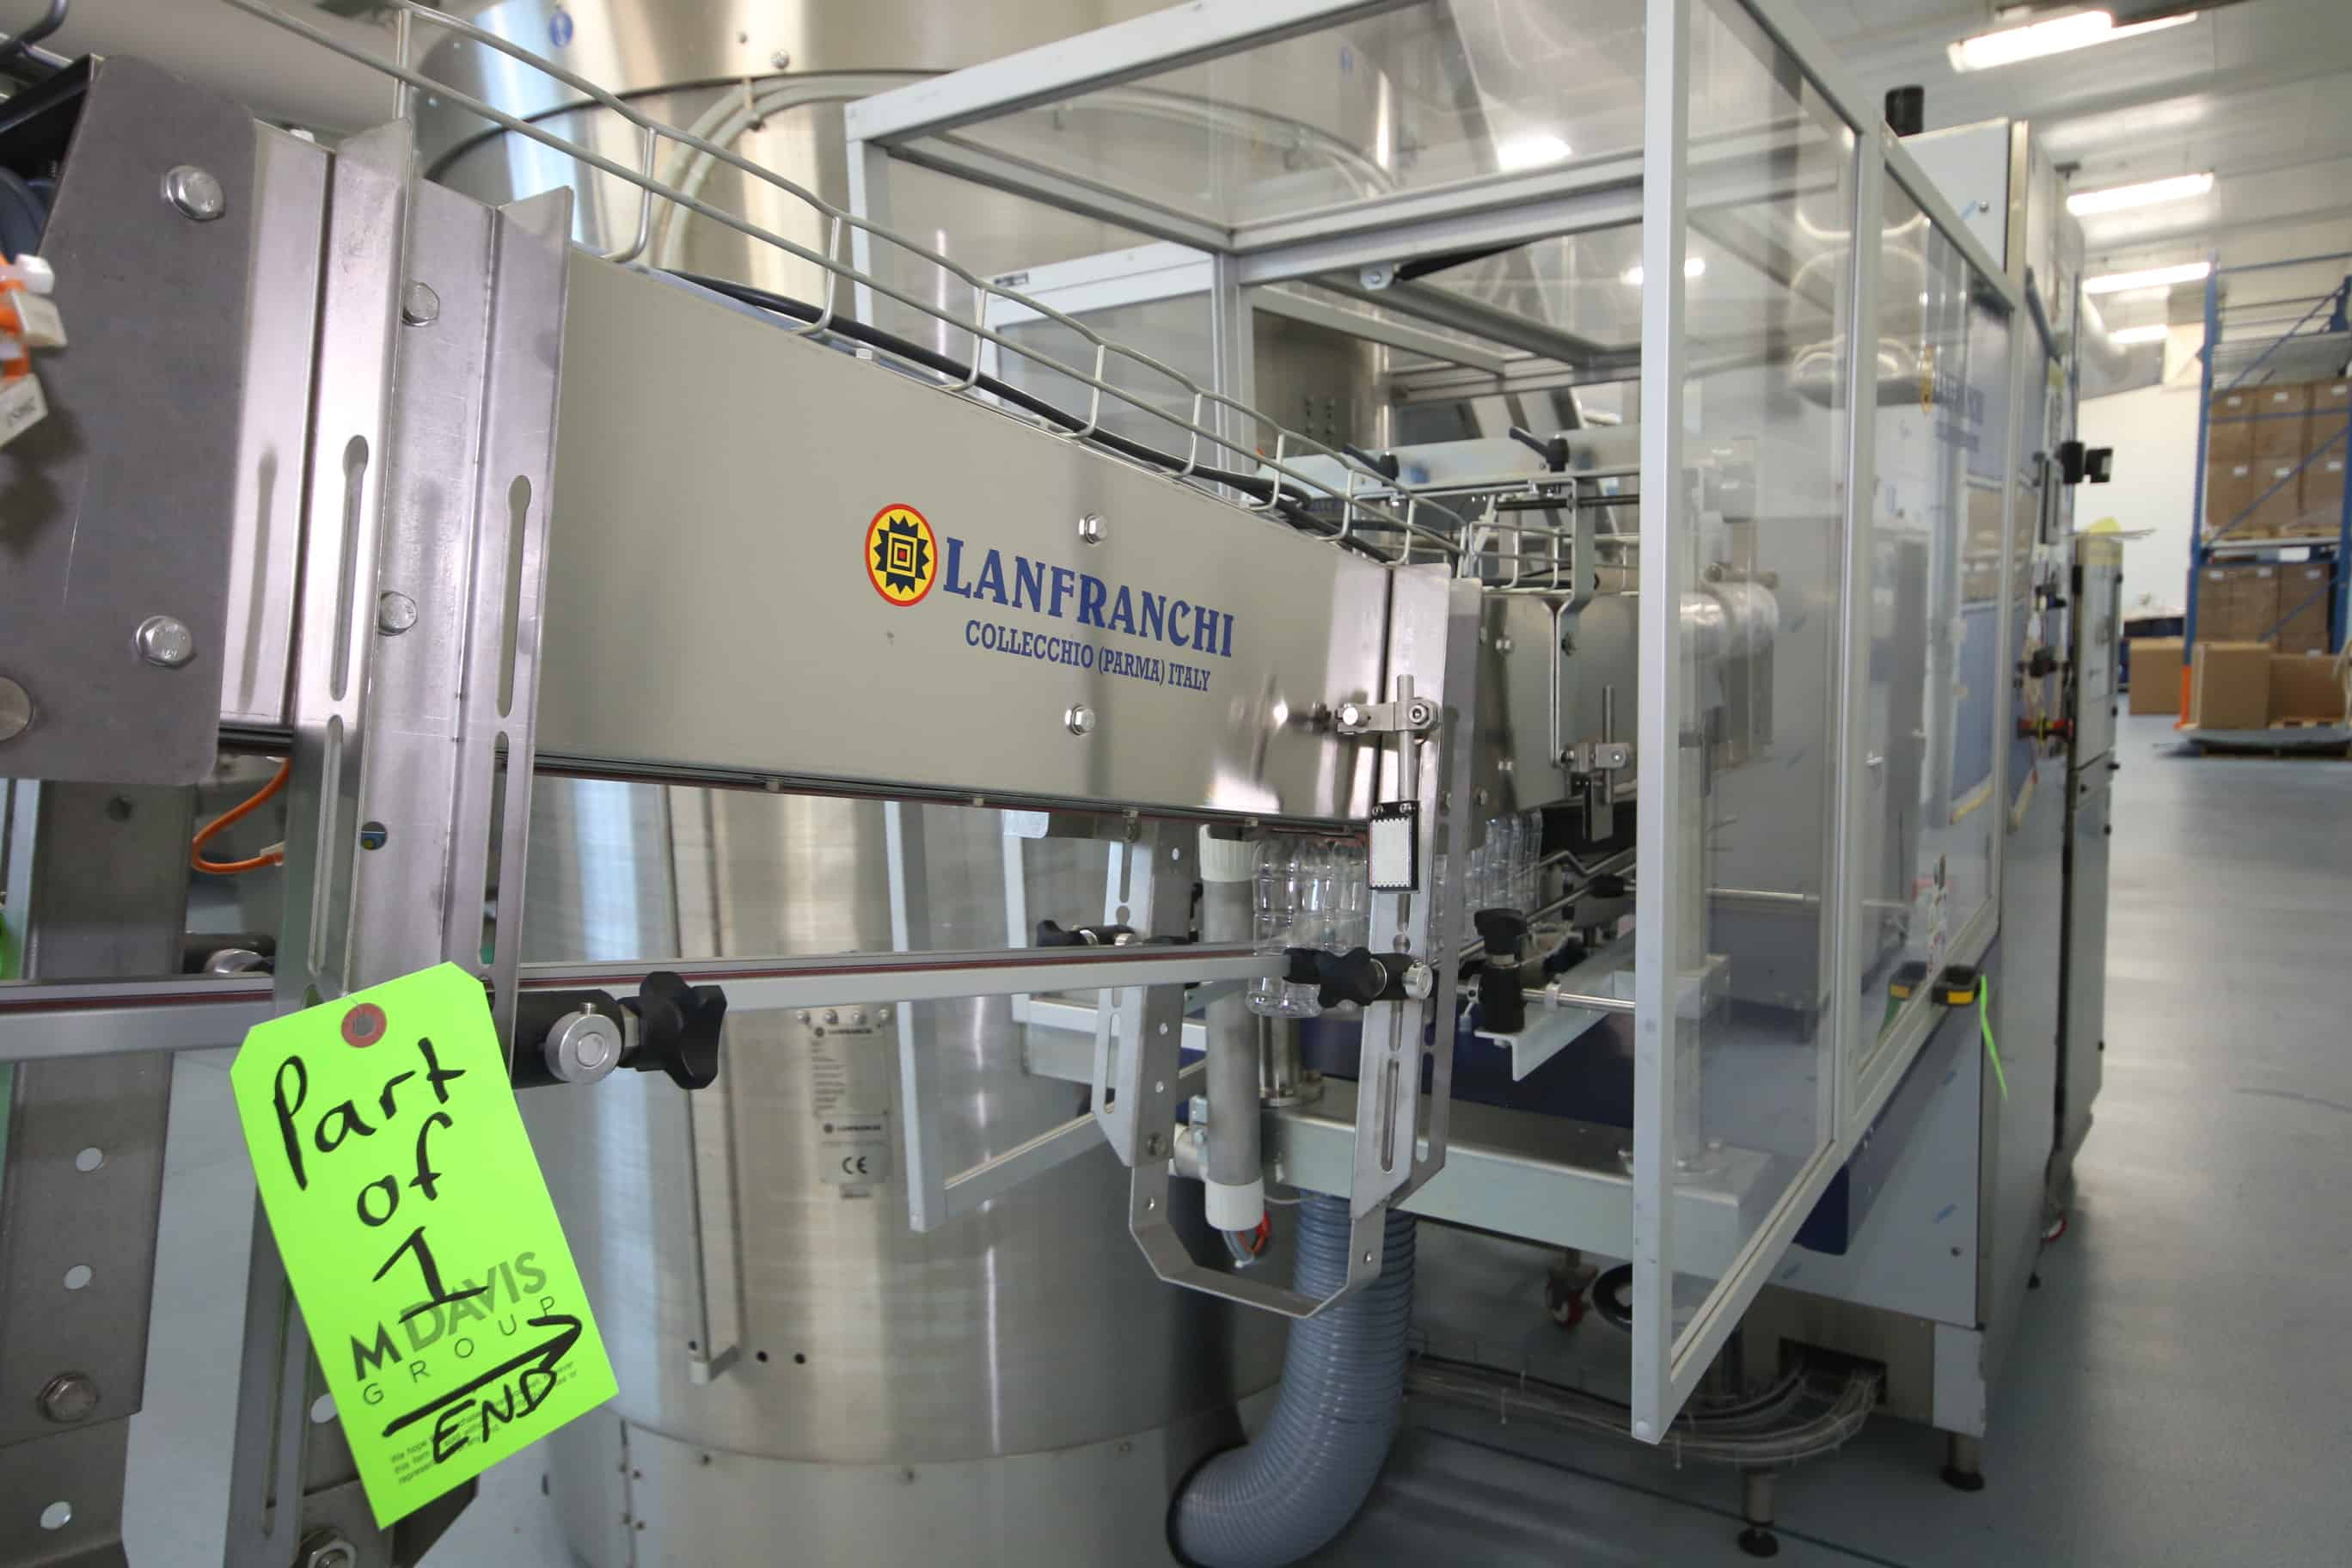 2009 Lanfranchi S/S Bottle Unscrambler, Type RM.STD.9, S/N 18241.1423.09, 5,000 Bottle Per Hr. Output, with Upright Cylinder Orientor Carasel, with Allen Bradley PanelView Plus 600, with Incline Discharge Air Conveyor